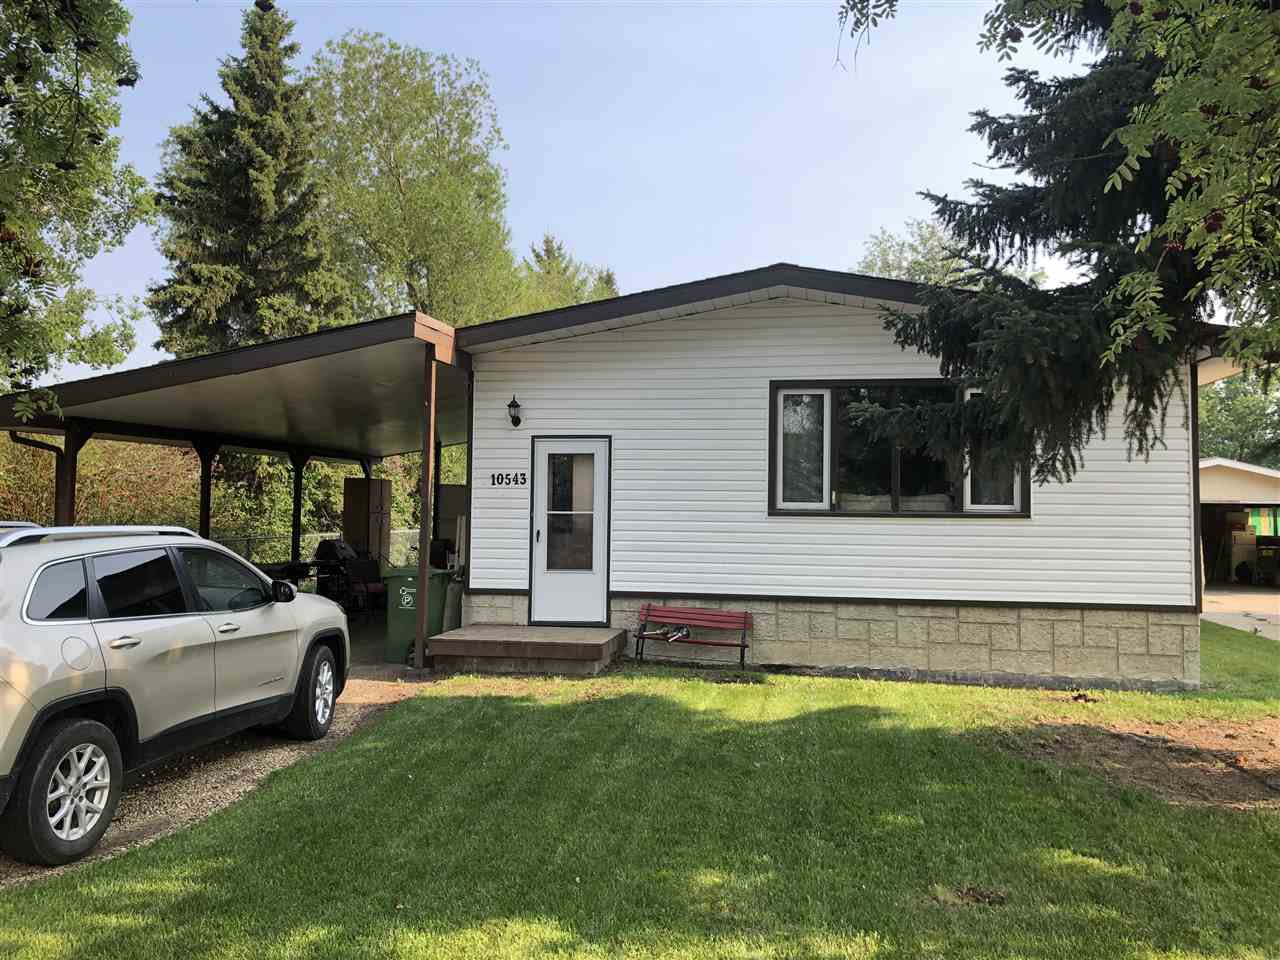 Main Photo: 10543 103 Street: Westlock House for sale : MLS®# E4160230